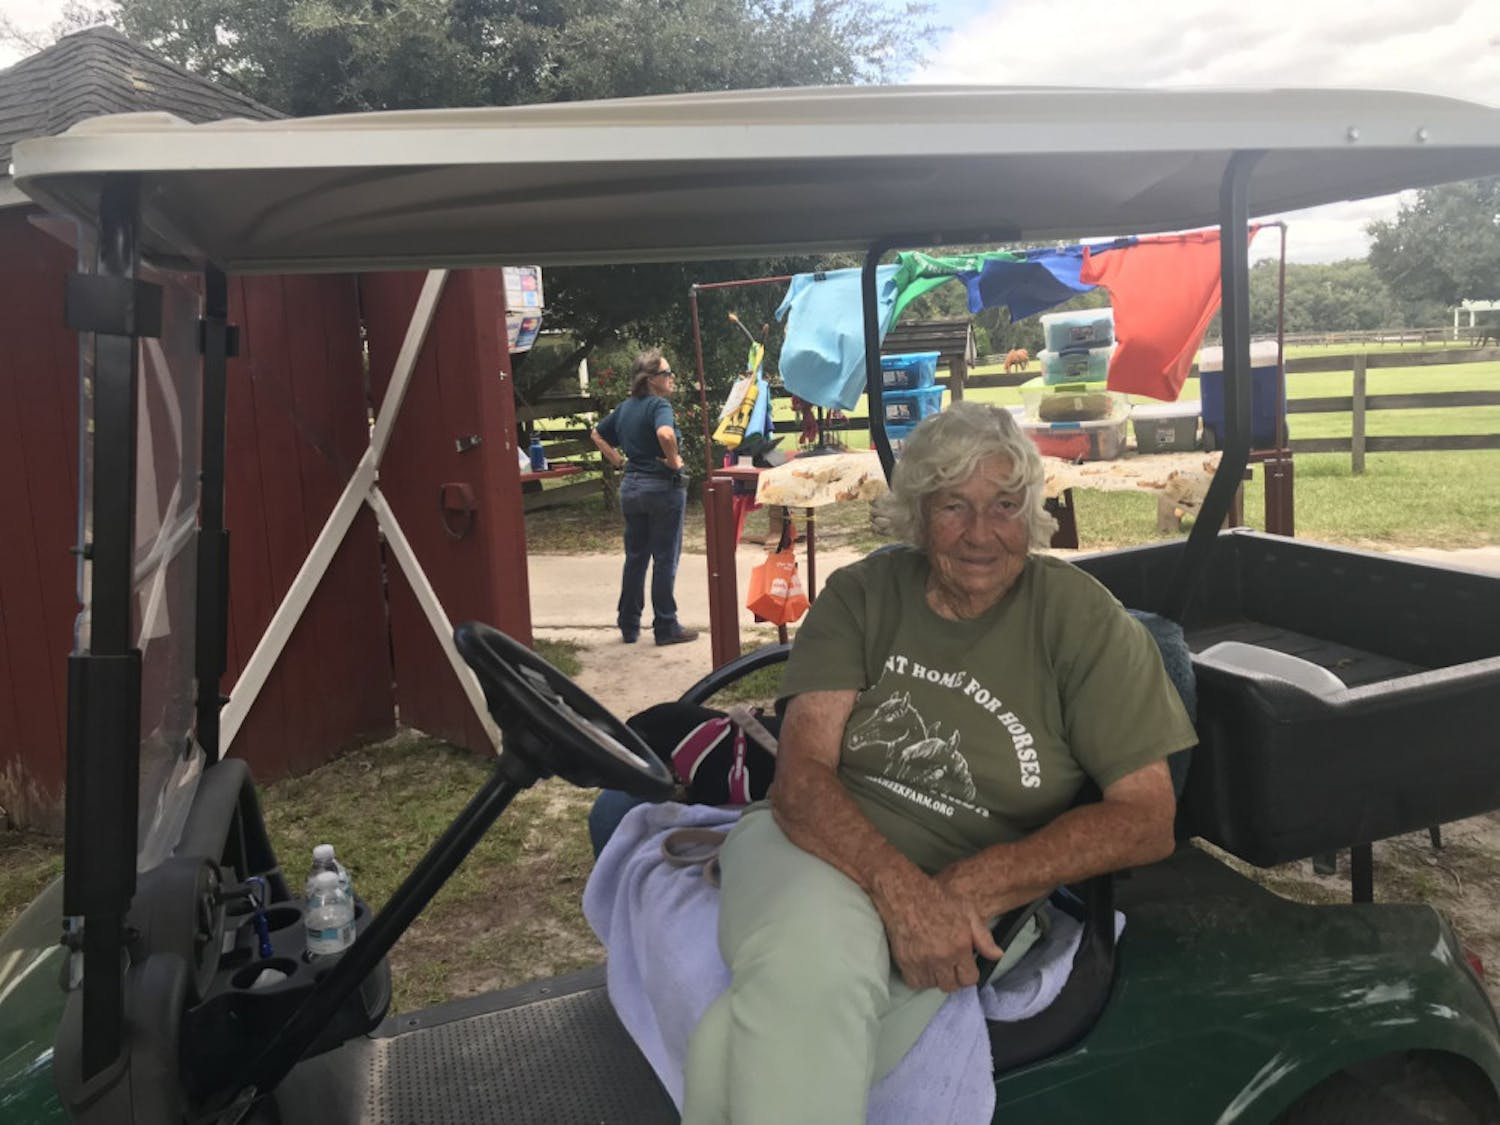 Mary Gregory, co-founder of the Retirement Home for Horses Inc., gets around the 335 acre property on a golf cart with her companion, Minnie, a rescue dachshund, by her side.